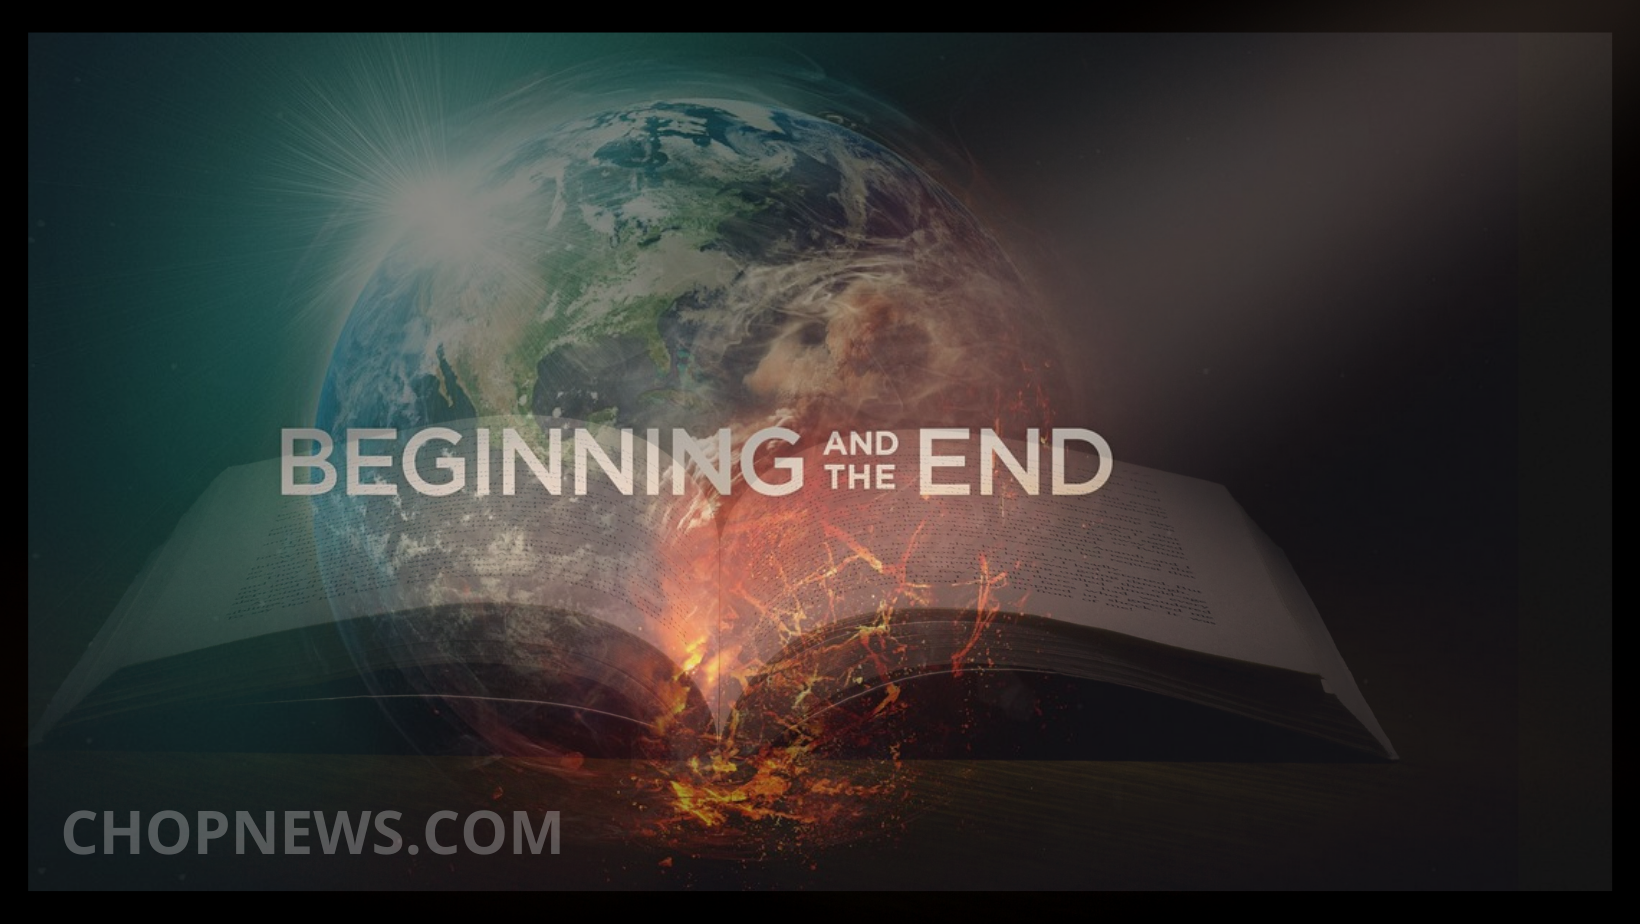 The Beginning and the End novel